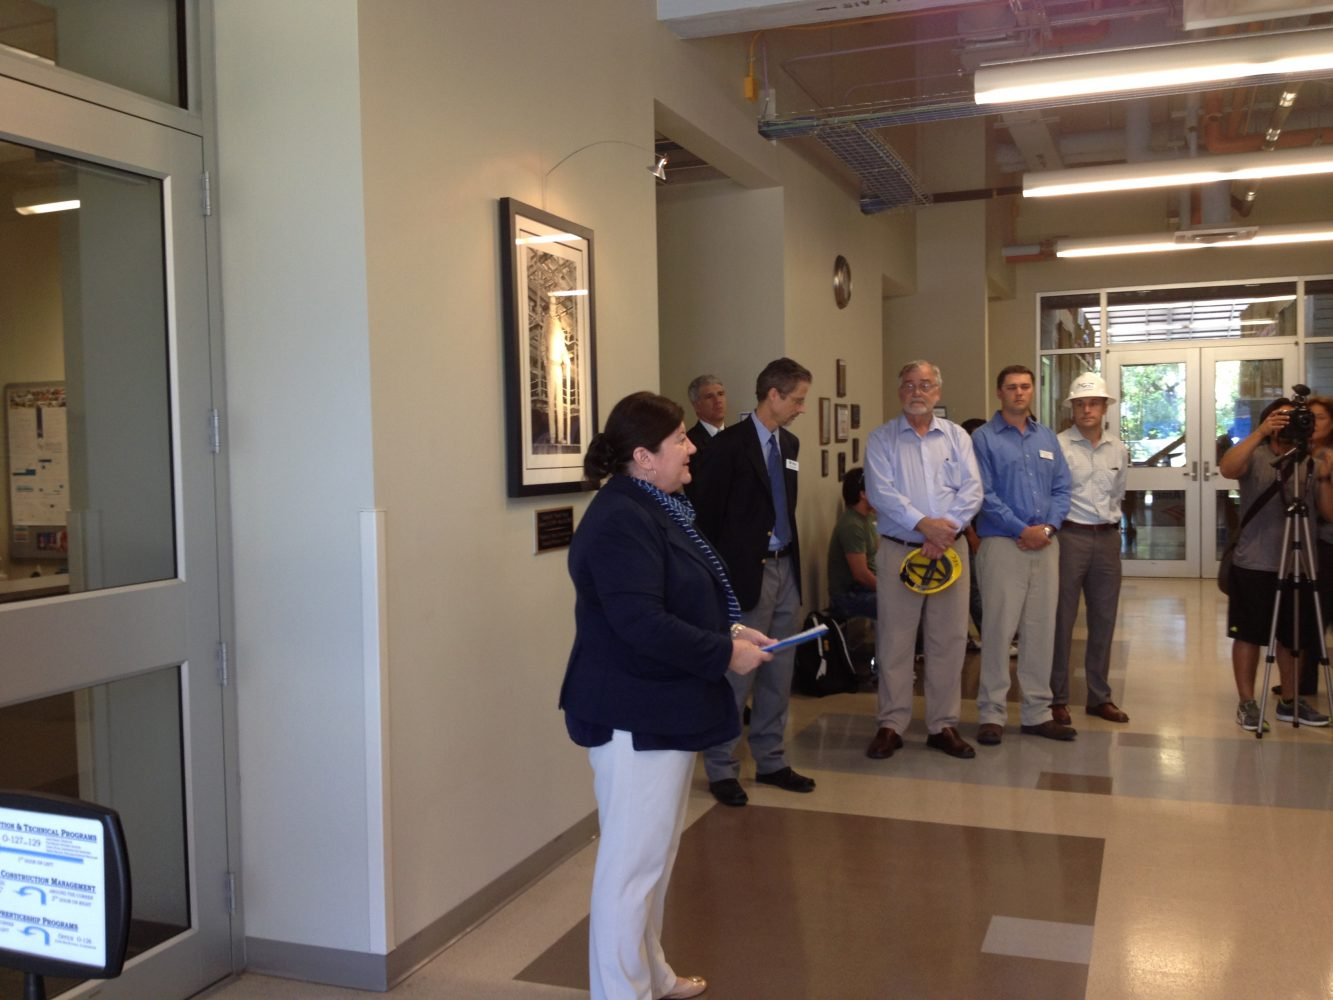 Director of Construction & Technical Programs at SFC, Jane Parkin gives tour of technology facilities to Chancellor for the FL Department of Education, Rod Duckworth.